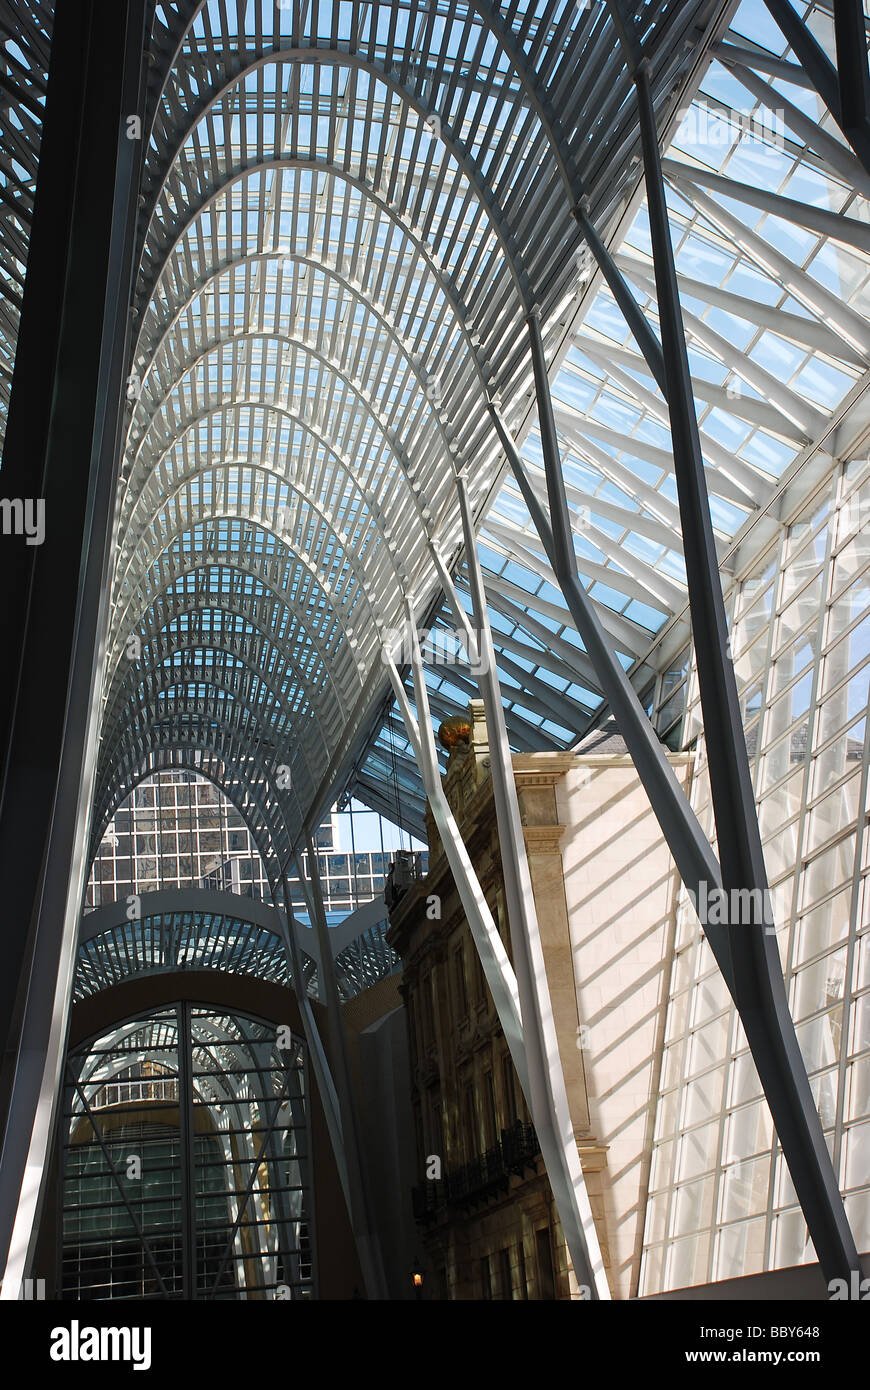 Galleria at Brookfield Place, BCE, Toronto, Canada - Stock Image